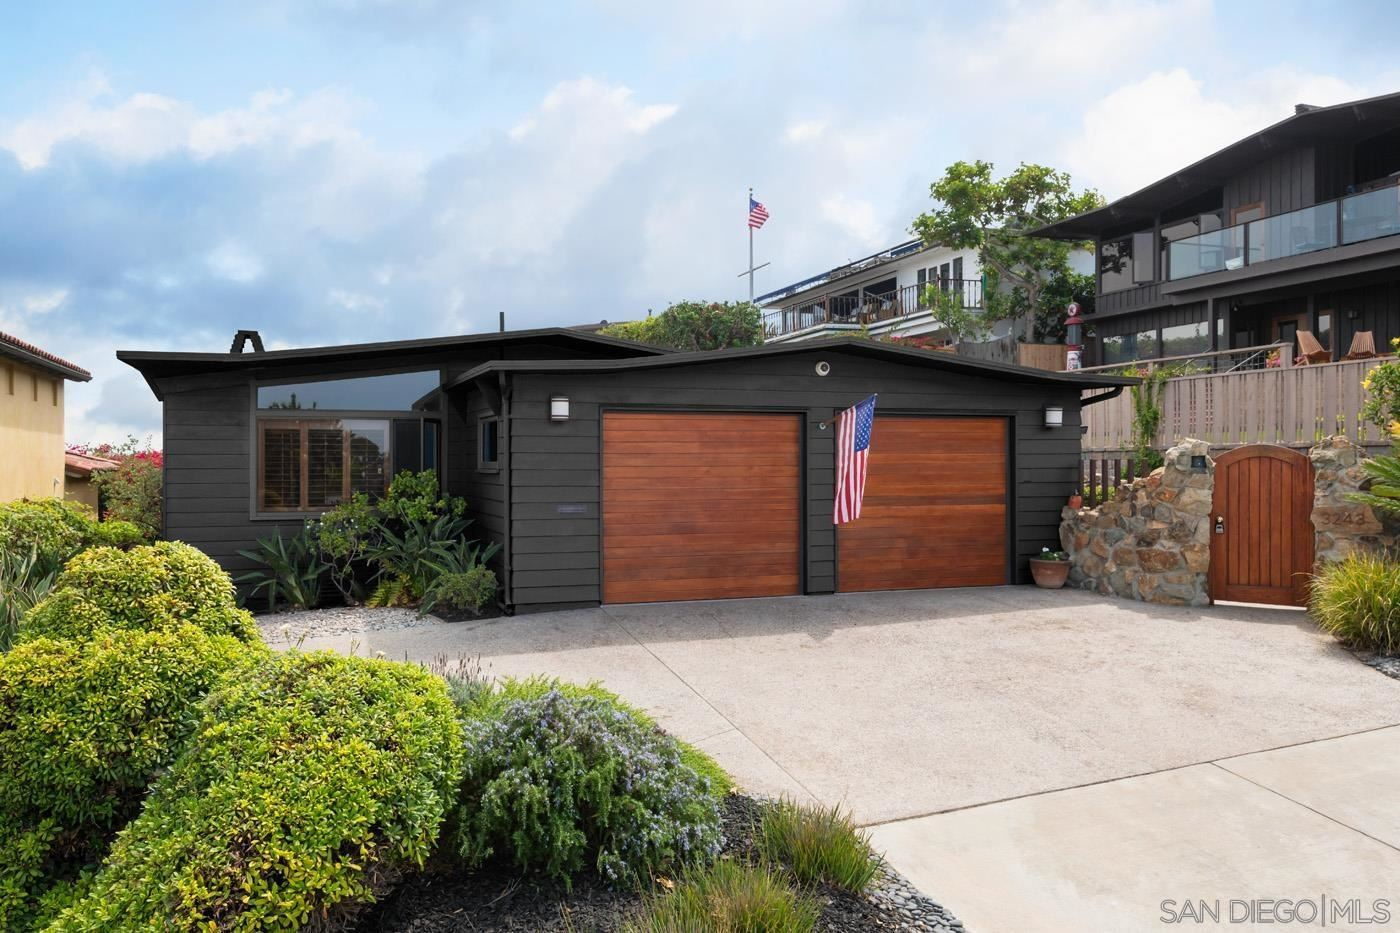 Photo of 3243 Harbor View Dr, San Diego, CA 92106 (MLS # 210029750)